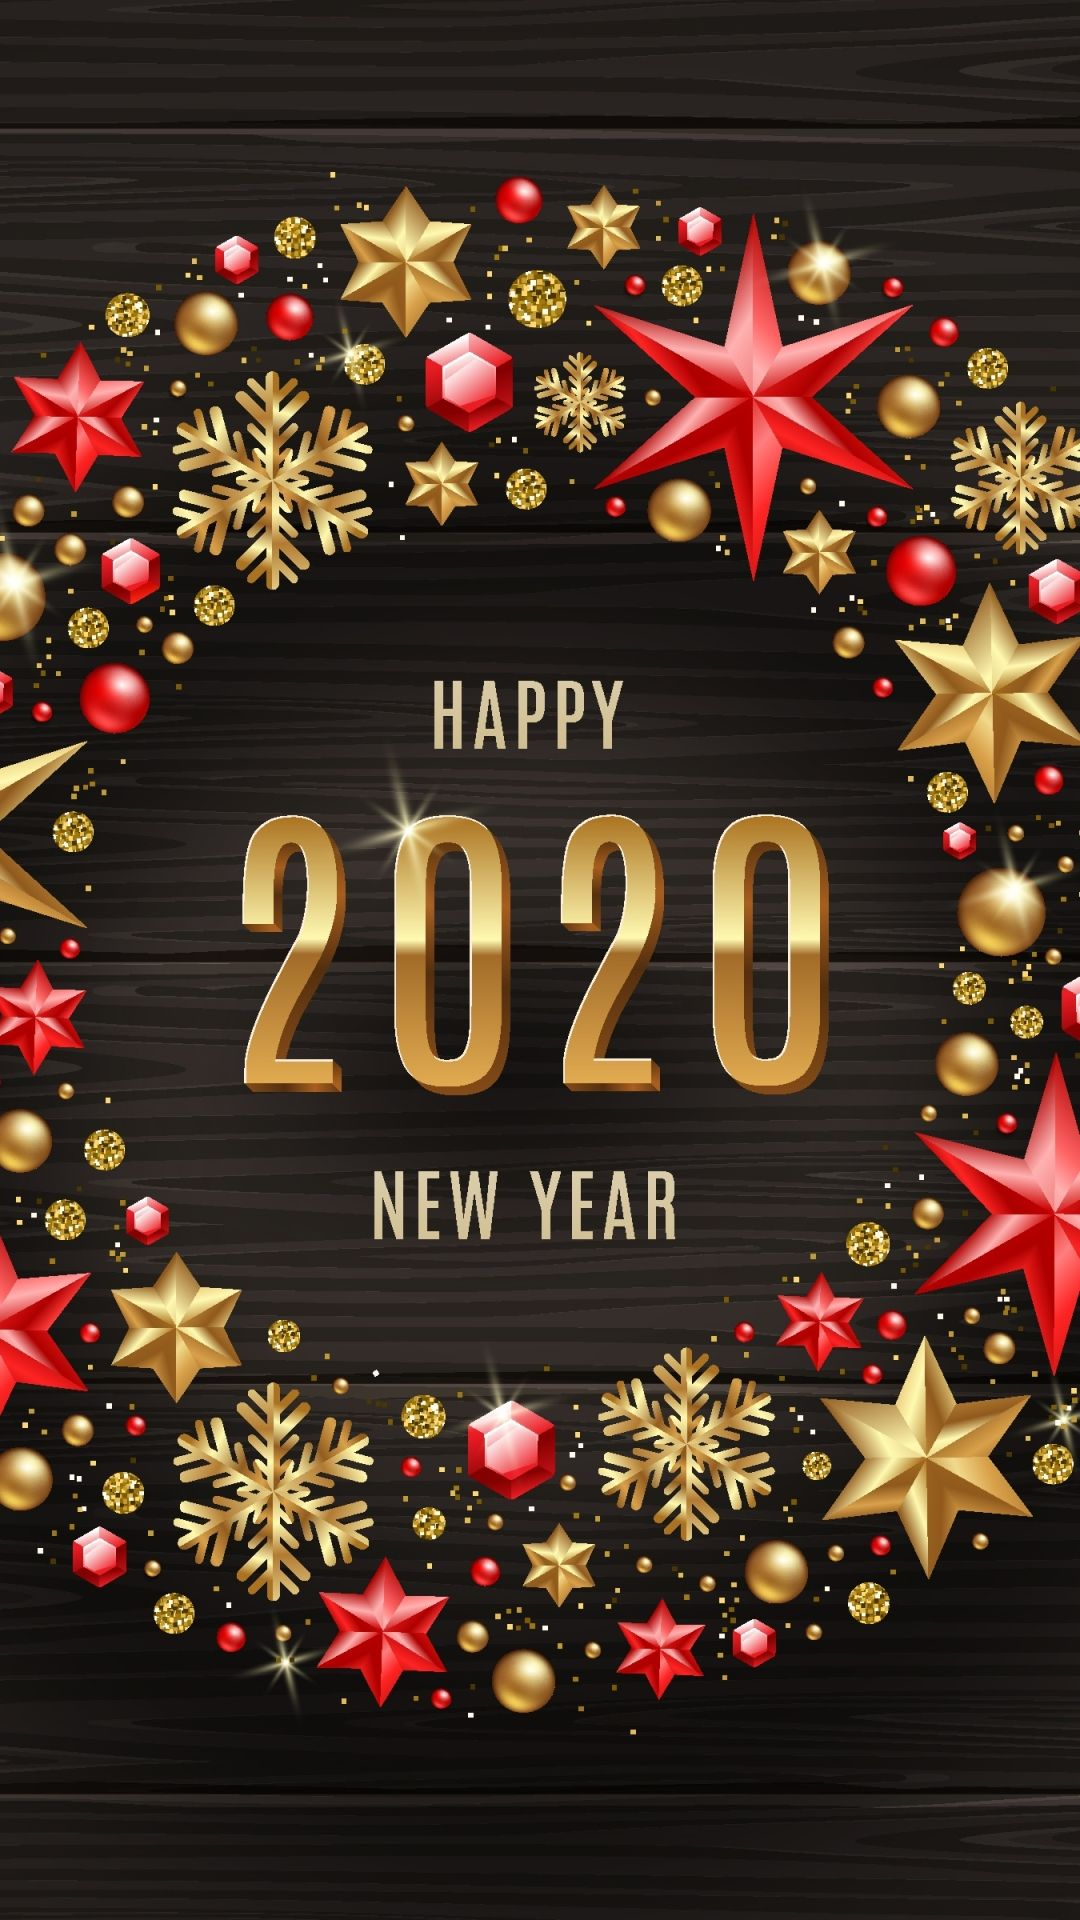 download Download Happy New Year 2020 Wishes Wallpaper for 1080x1920